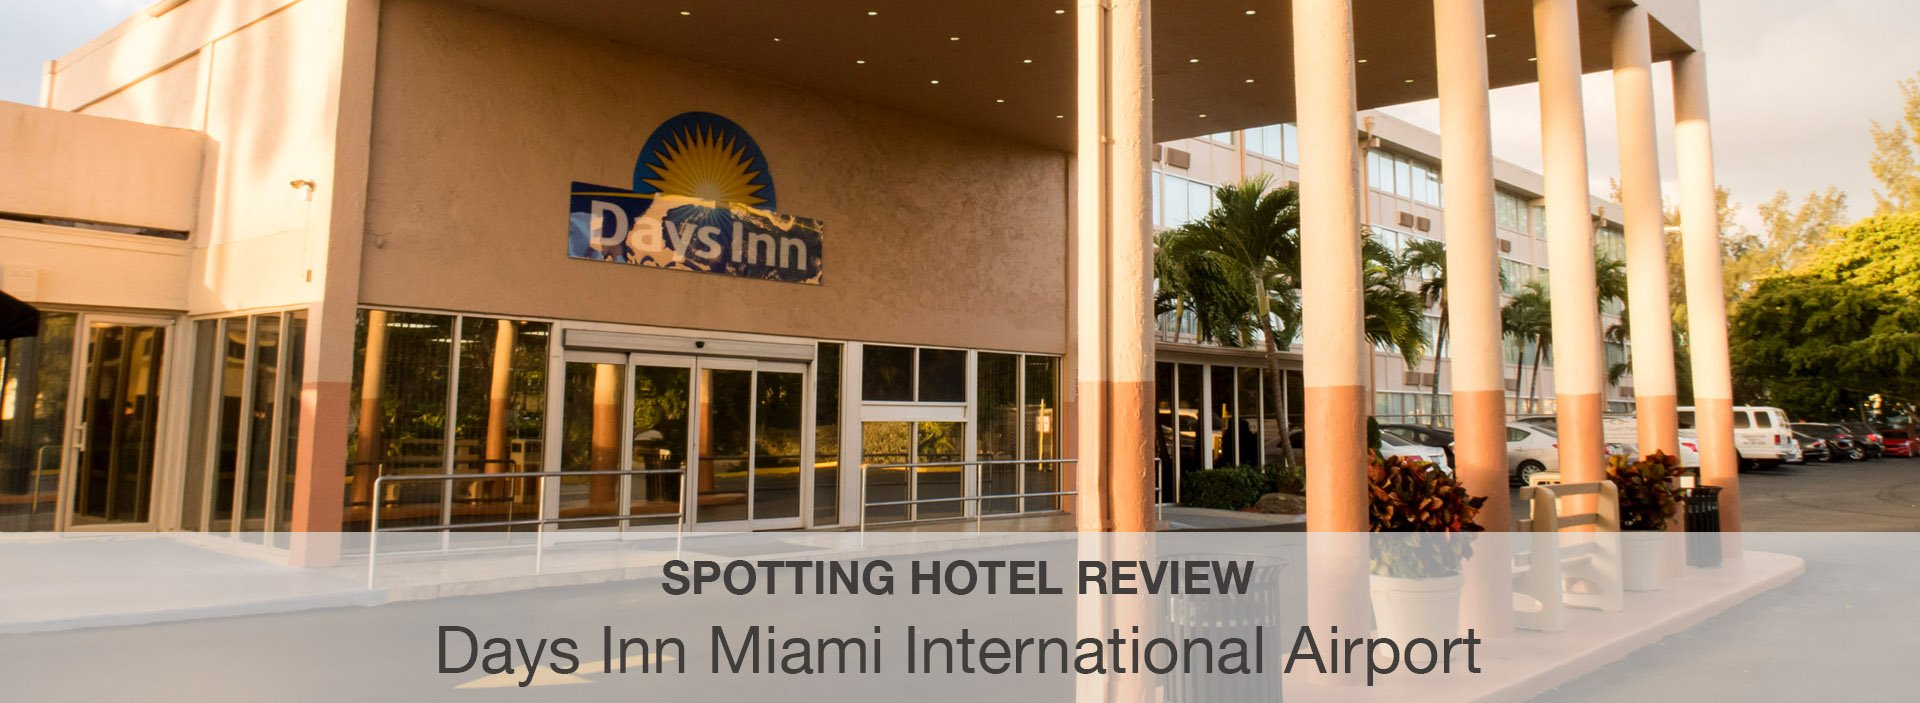 Spotting Hotel Review: Days Inn Miami International Airport